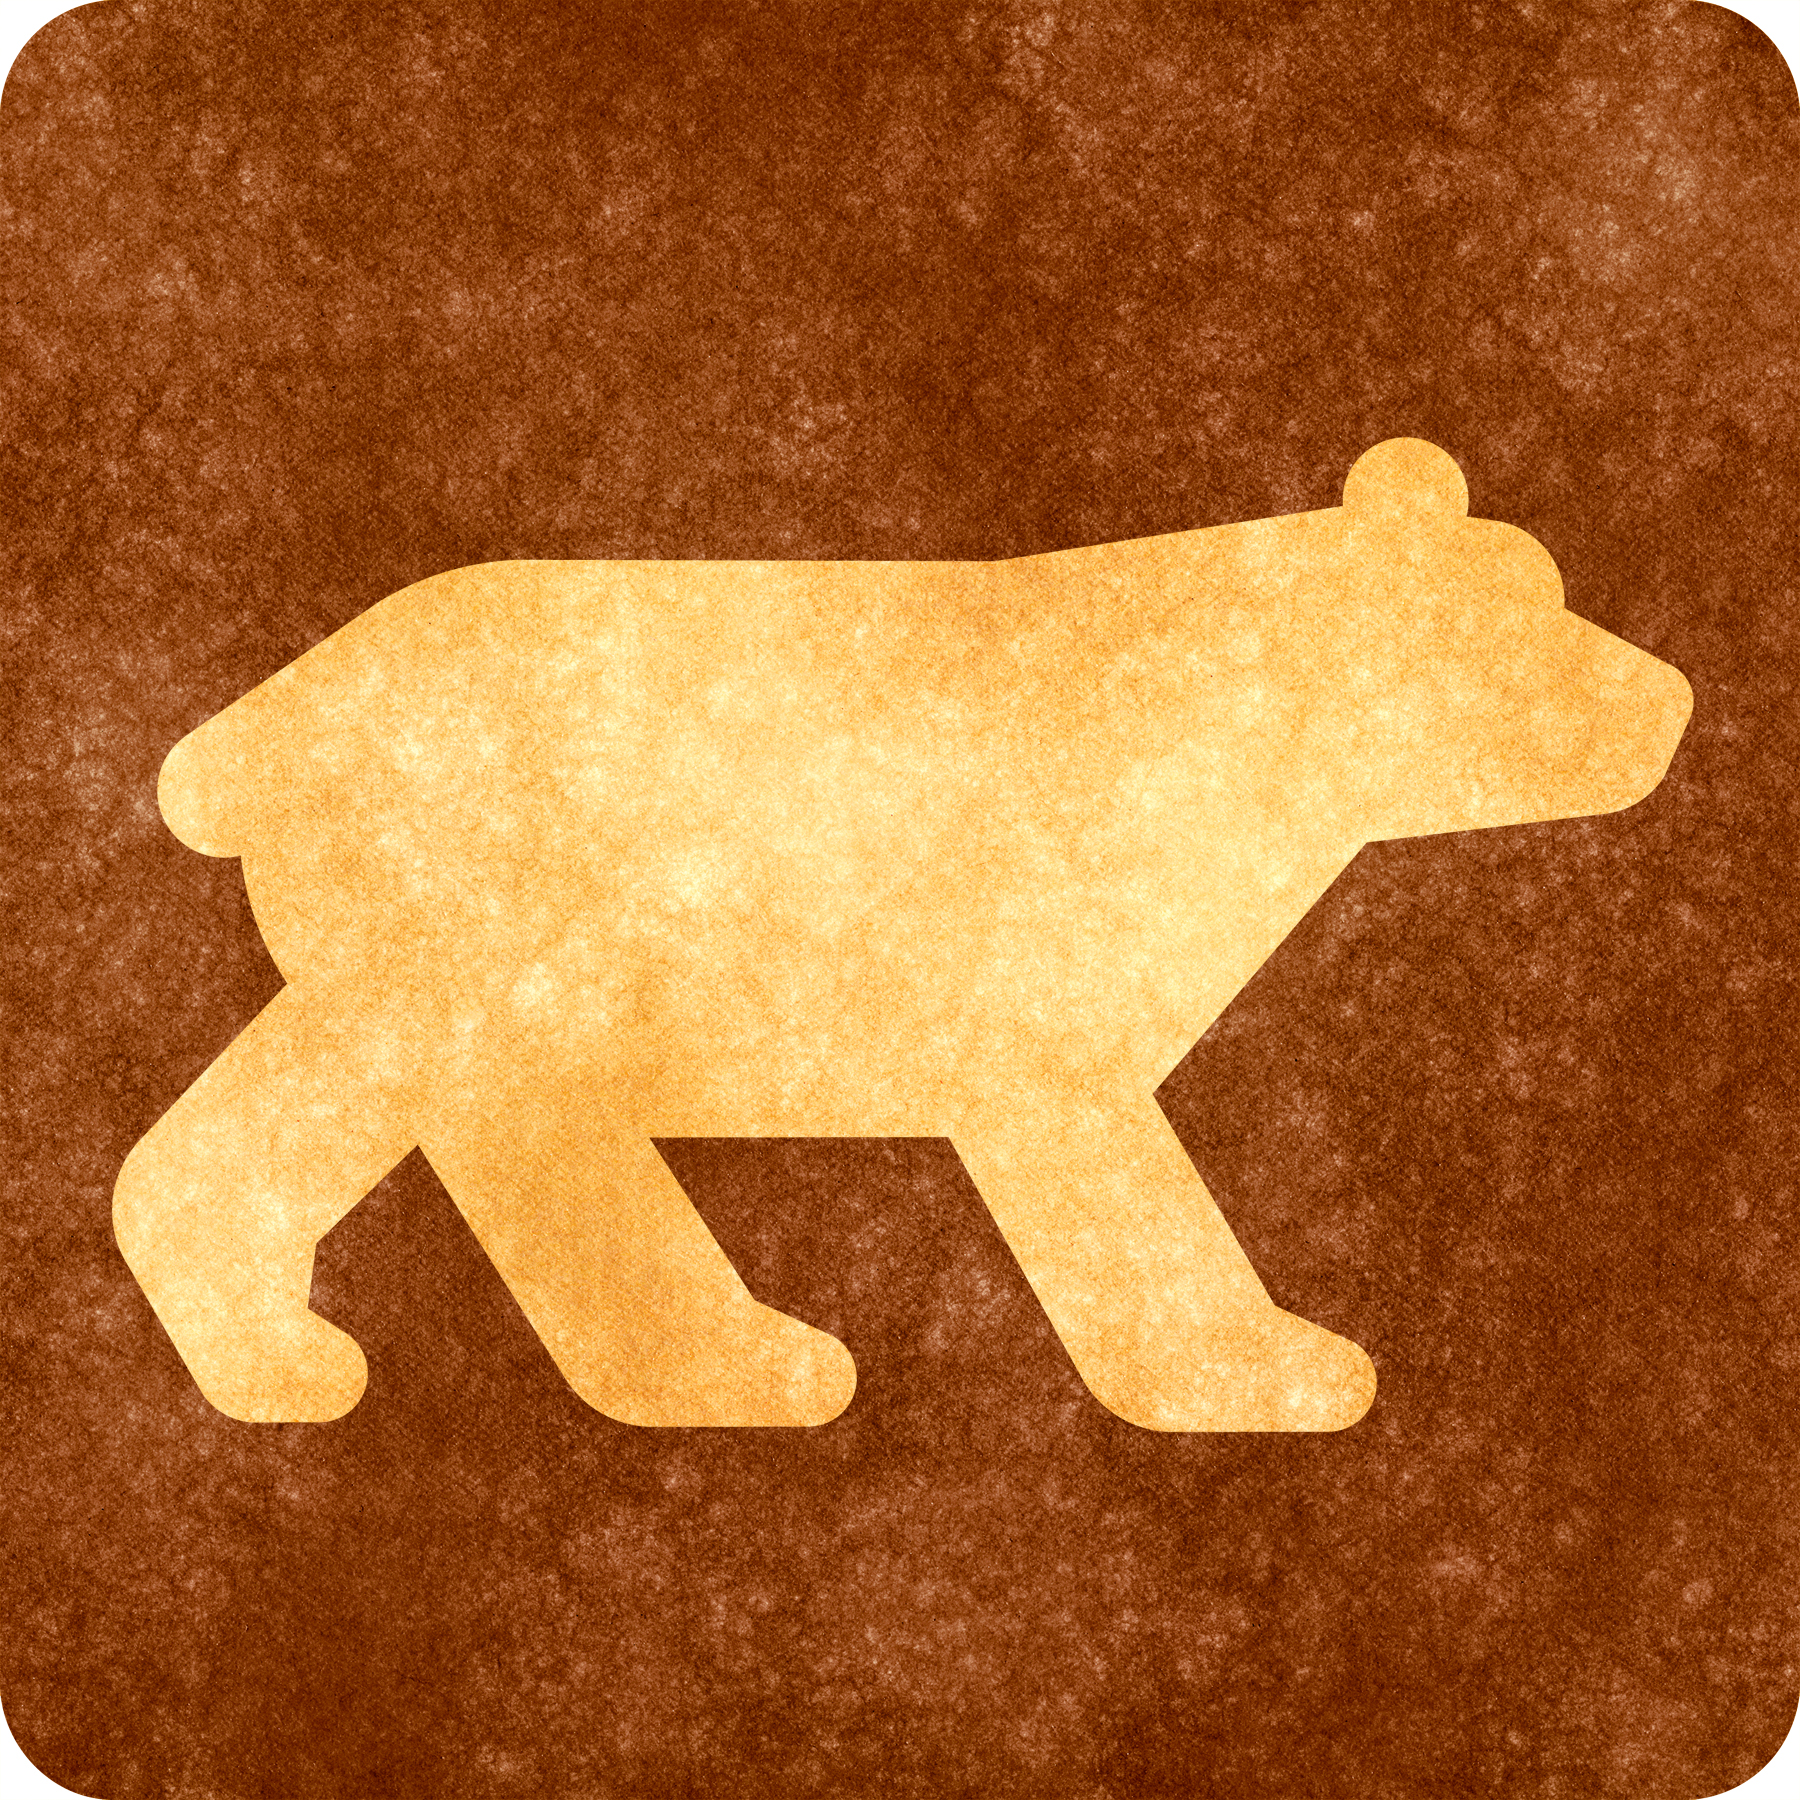 Sepia Grunge Sign - Bear Viewing, Signage, Photo, Picture, Res, HQ Photo